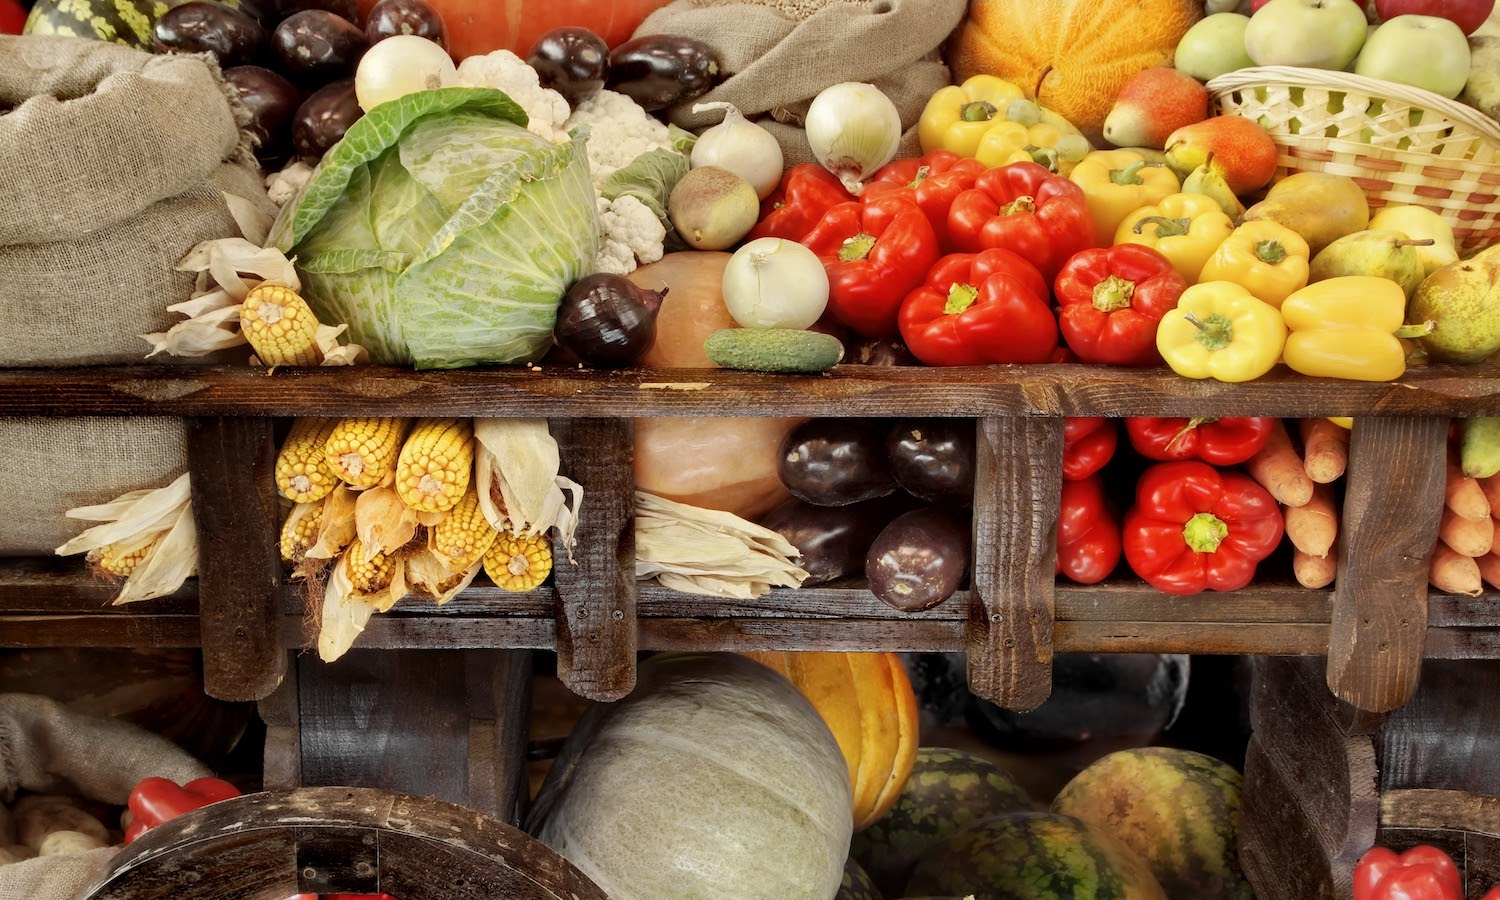 COVID-19 and Mexico's Food System